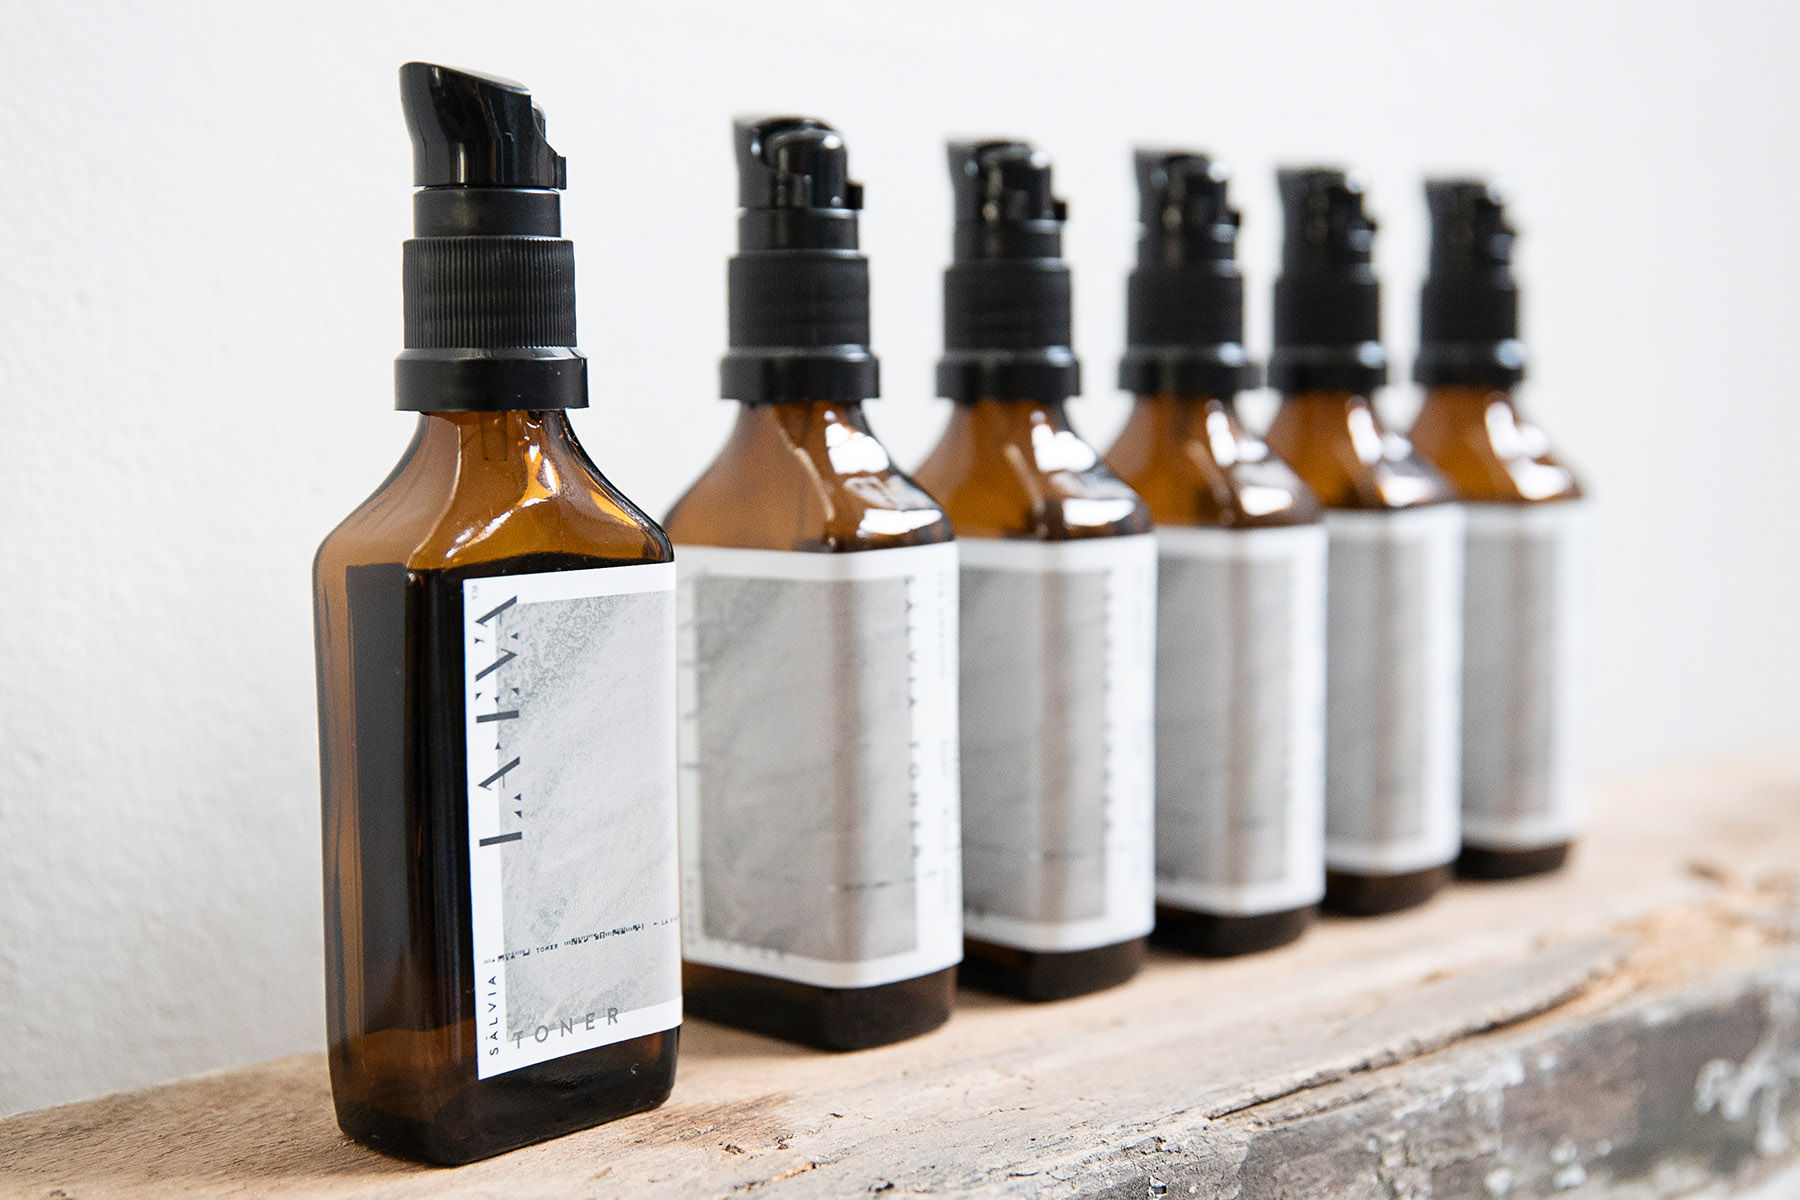 Row of La Eva, small salvia toner bottles